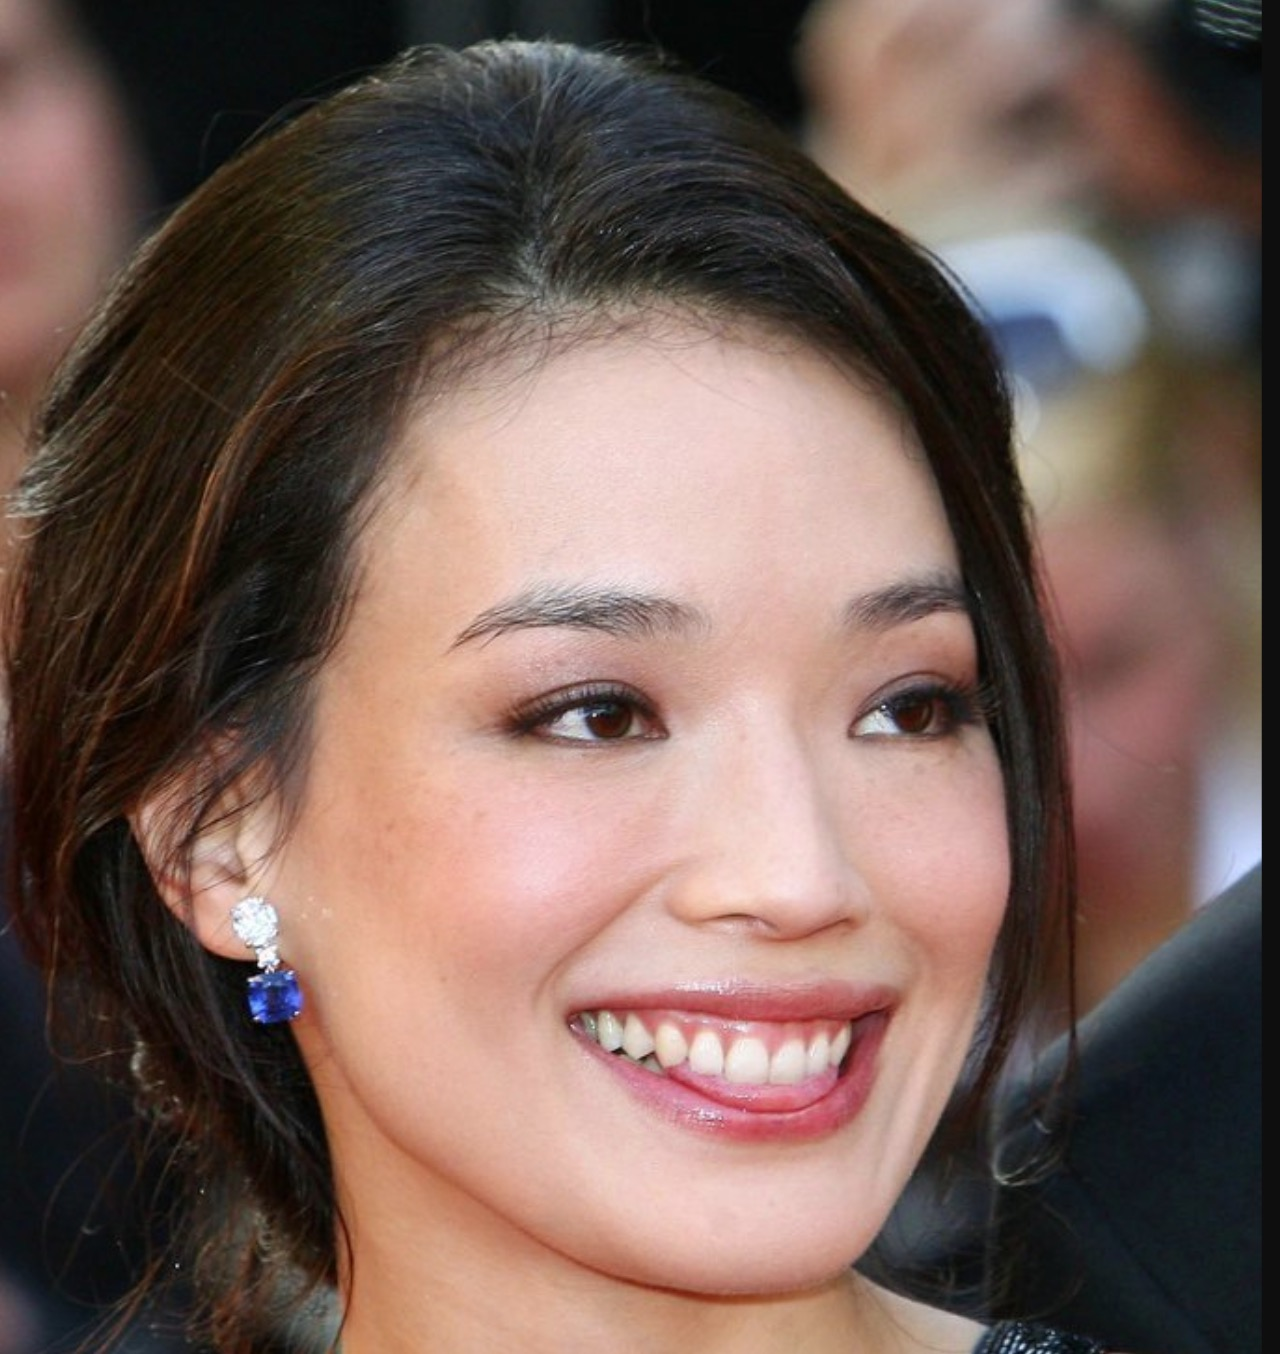 Shu Qi the bright smile - Square Jawed Women